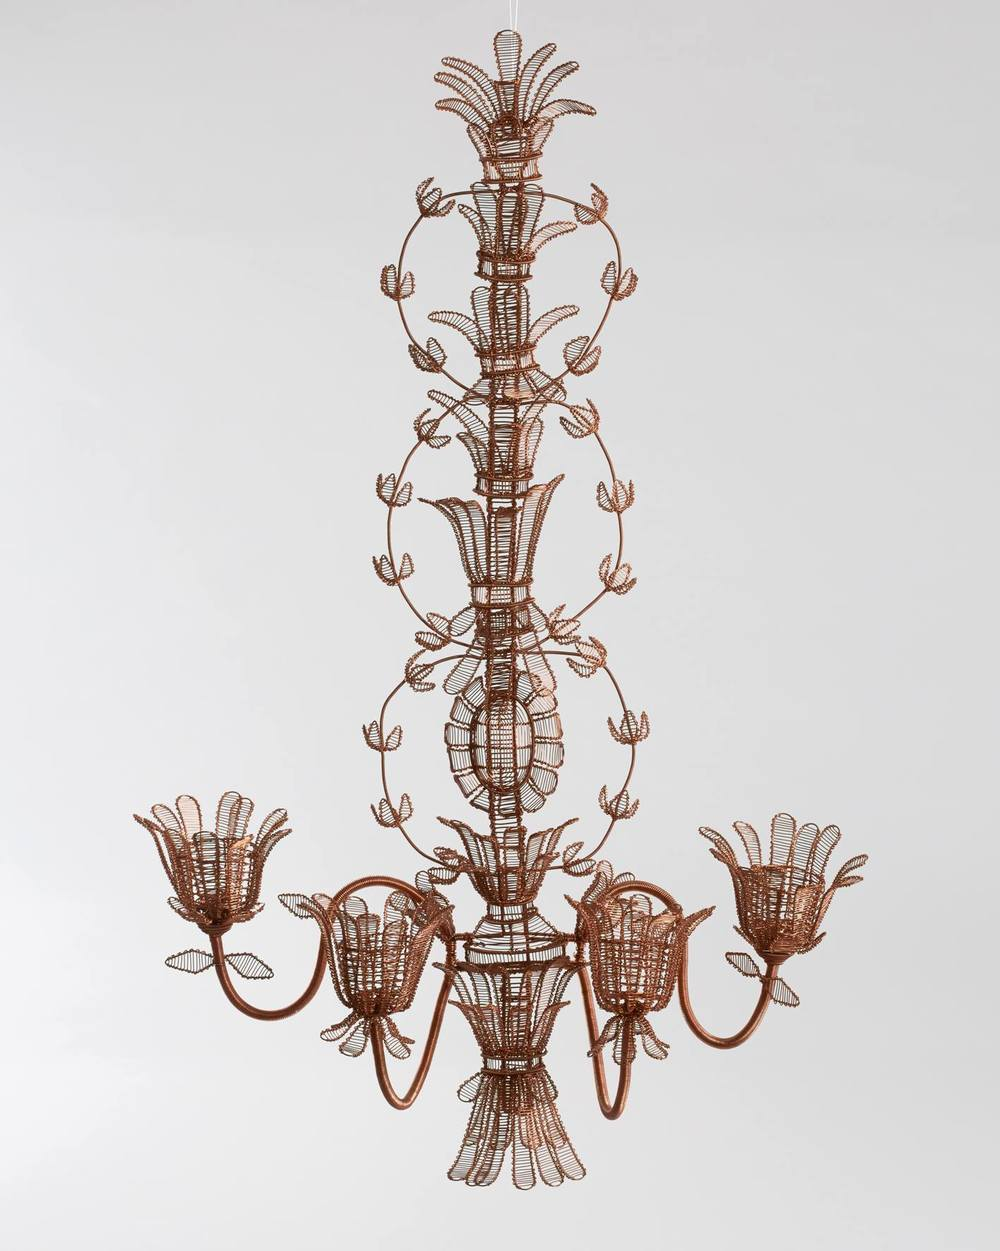 The Copper Madame Filigree Wall Sconce    This wall sconce was inspired by the carved gilt wall sconces that Robert Adam designed for grand English homes in the late 18th Century. Reimagined in fine filigree wire-work that was collected by the likes of Catherine the Great at the time, these sconces are made entirely by hand in copper wire.  R4200   *The sconces can be fitted with electricity and small light bulbs